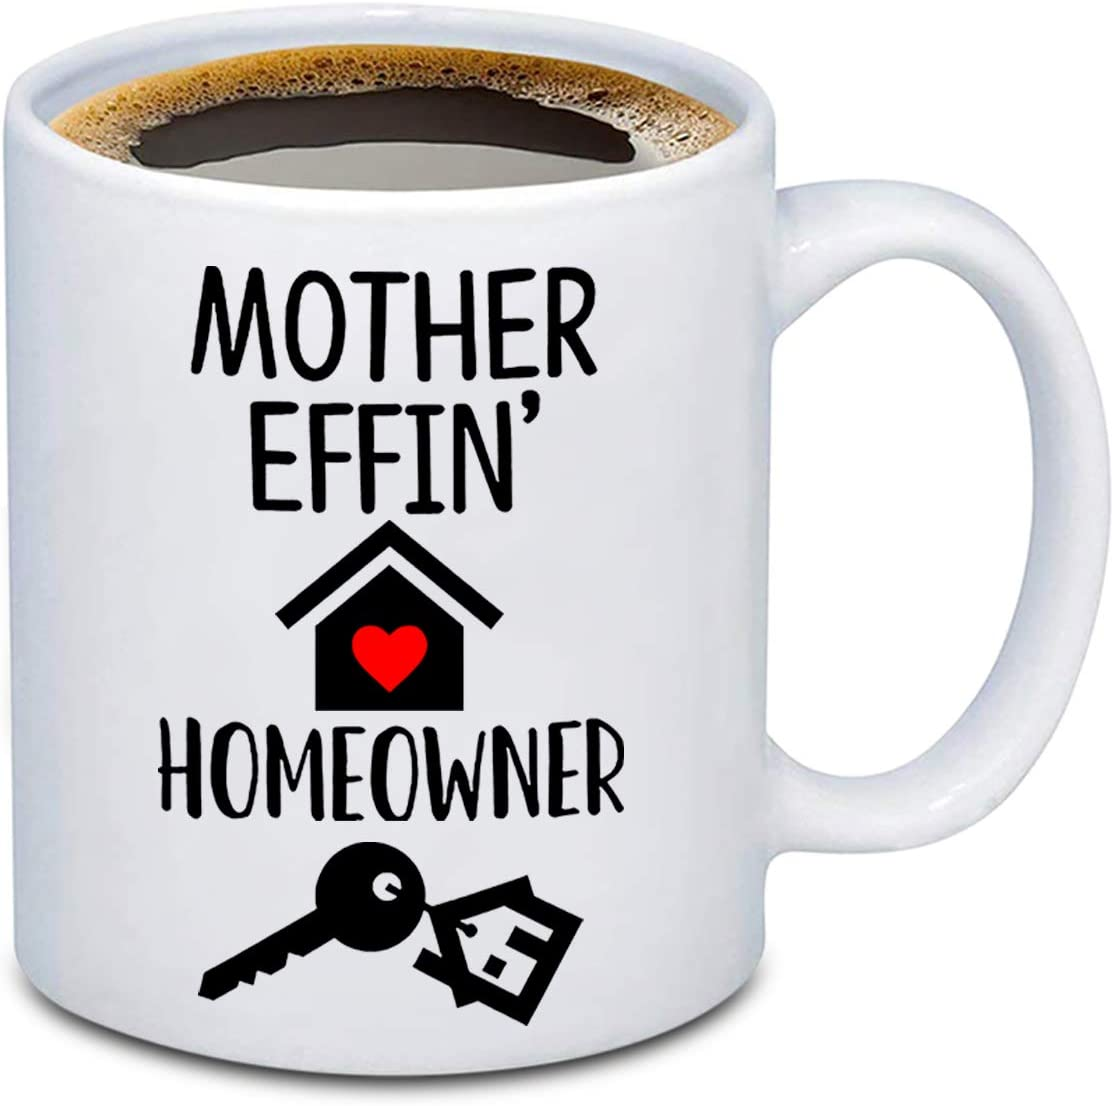 BEKECH Housewarming Mug for New Homeowner Mother Effin Homeowner Funny Coffee Mug for New First Time Home Owner Present House Warming Presents Tea Mug Cup (Mother Effin' Homeowner)